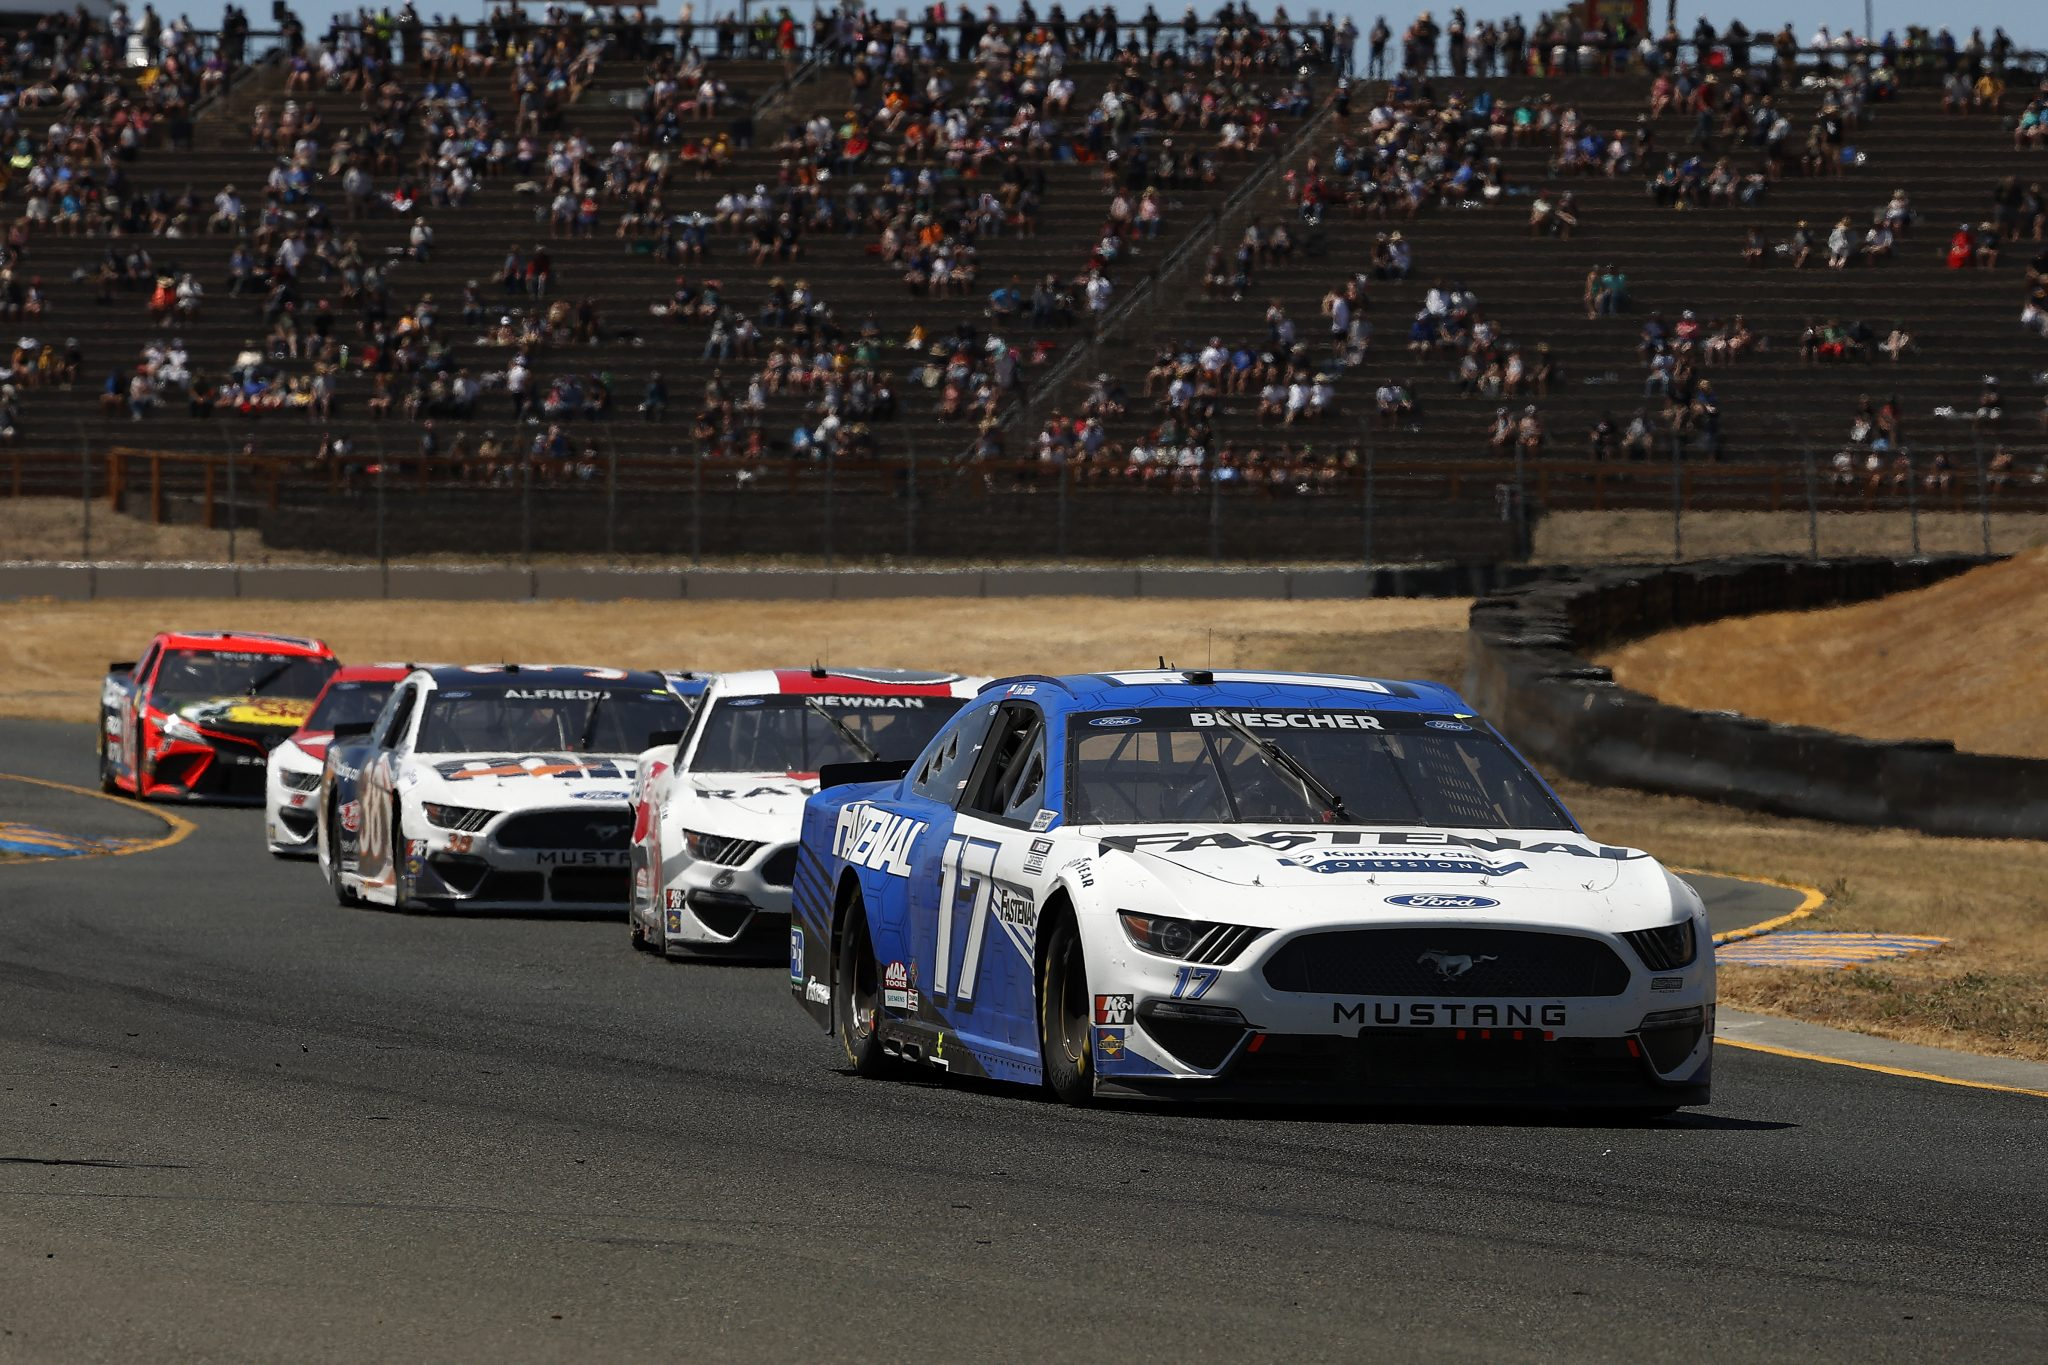 SONOMA, CALIFORNIA - JUNE 06: Chris Buescher, driver of the #17 Fastenal Ford, drives during the NASCAR Cup Series Toyota/Save Mart 350 at Sonoma Raceway on June 06, 2021 in Sonoma, California. (Photo by Maddie Meyer/Getty Images) | Getty Images